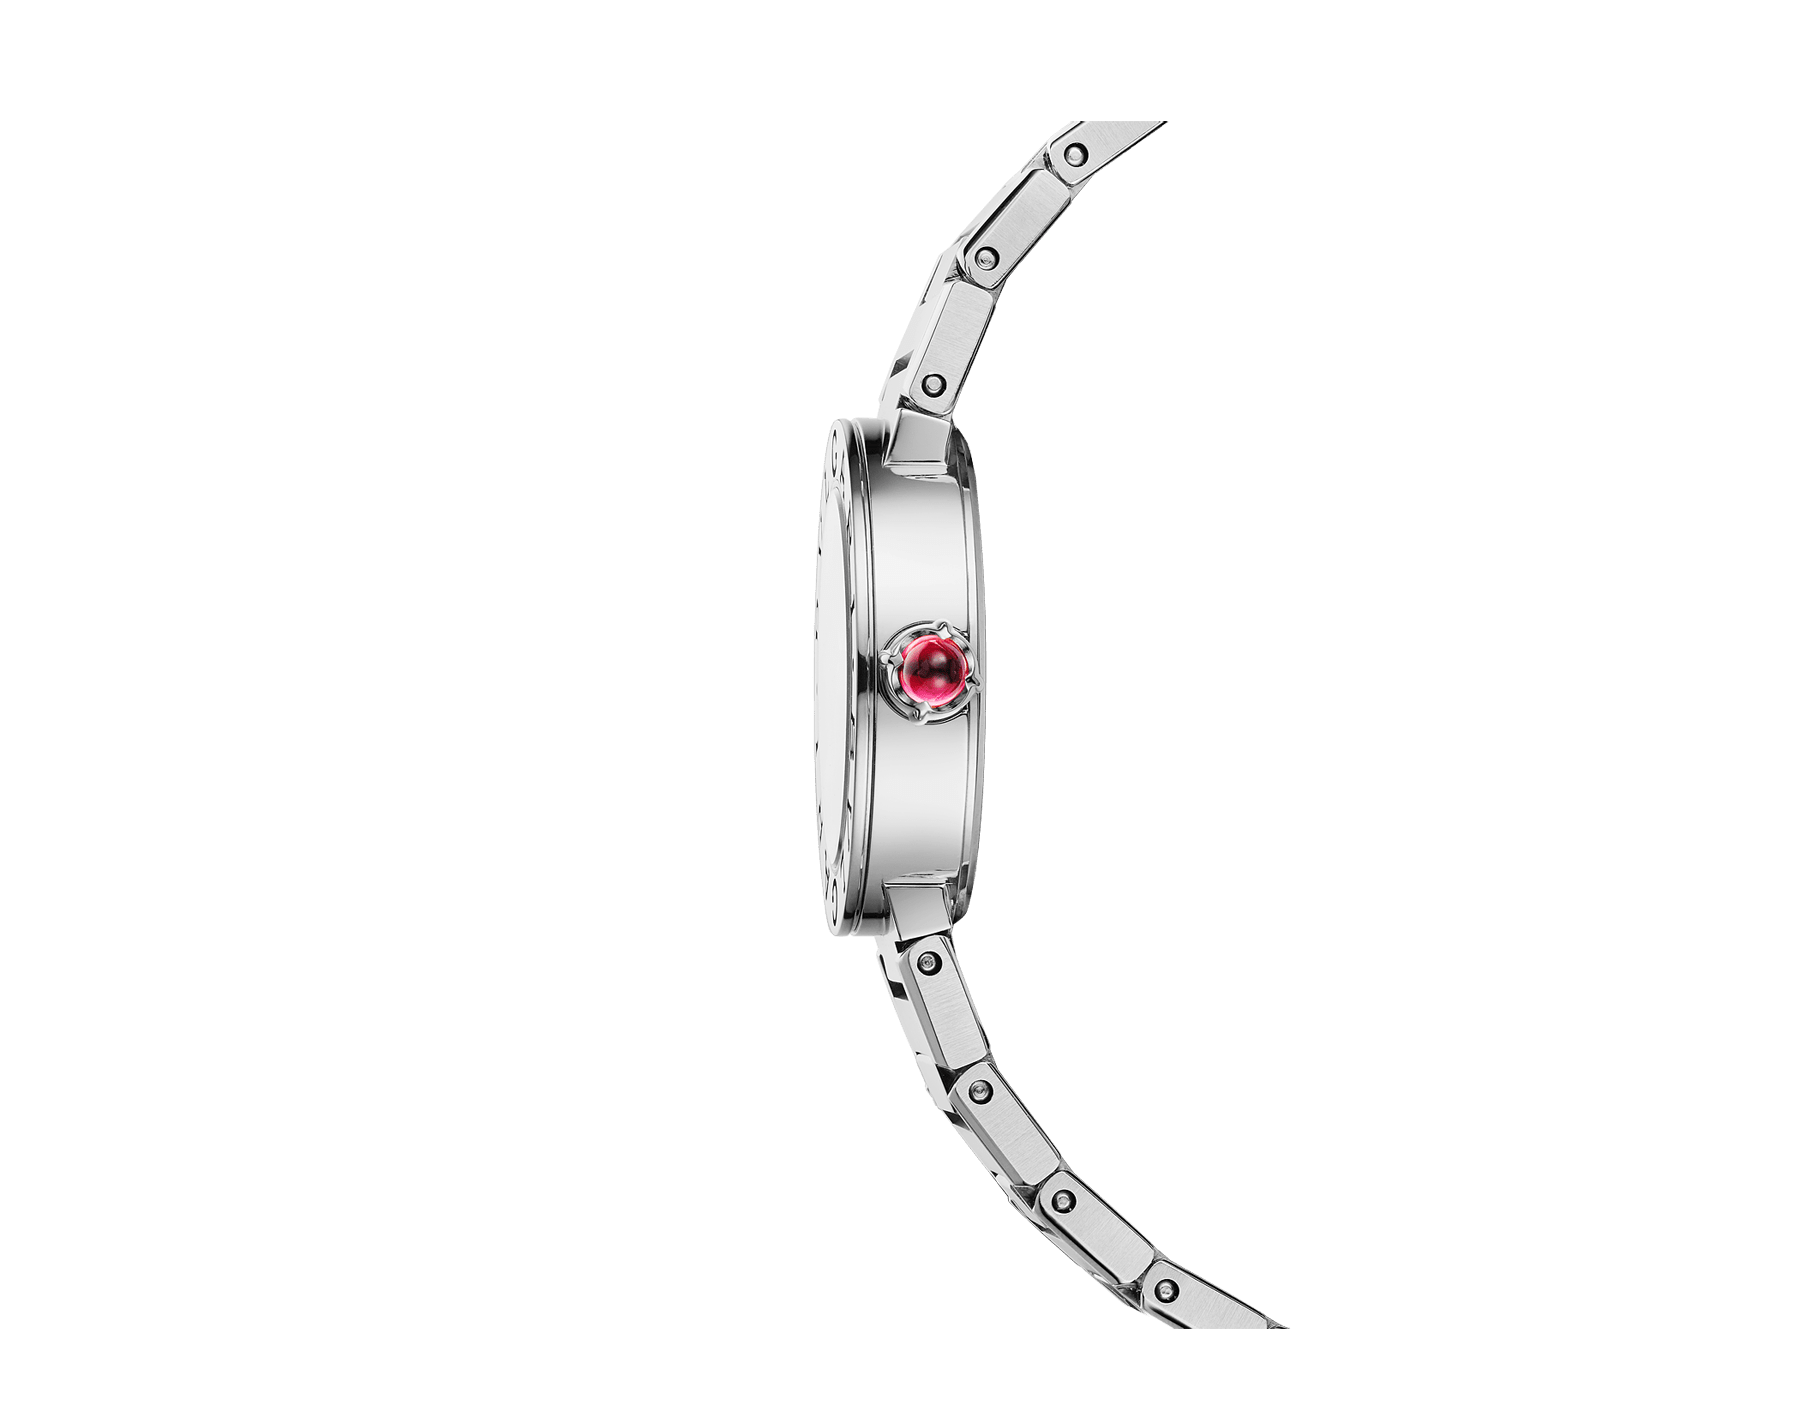 BVLGARI BVLGARI LADY watch in stainless steel case and bracelet, stainless steel bezel engraved with double logo, anthracite satiné soleil lacquered dial and diamond indexes 102942 image 2